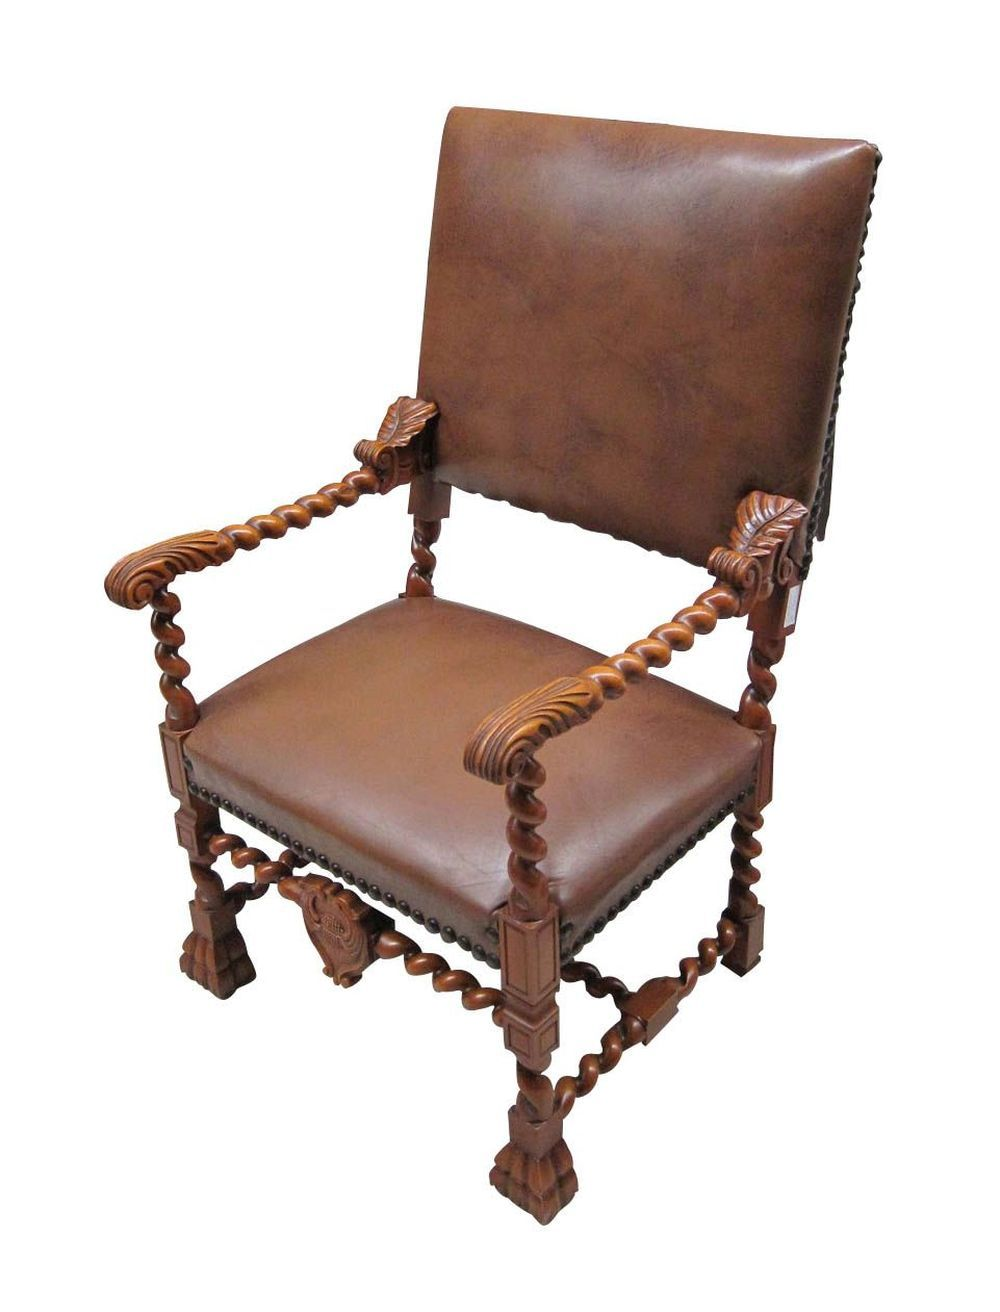 Antique Louis XIII-style leather armchair